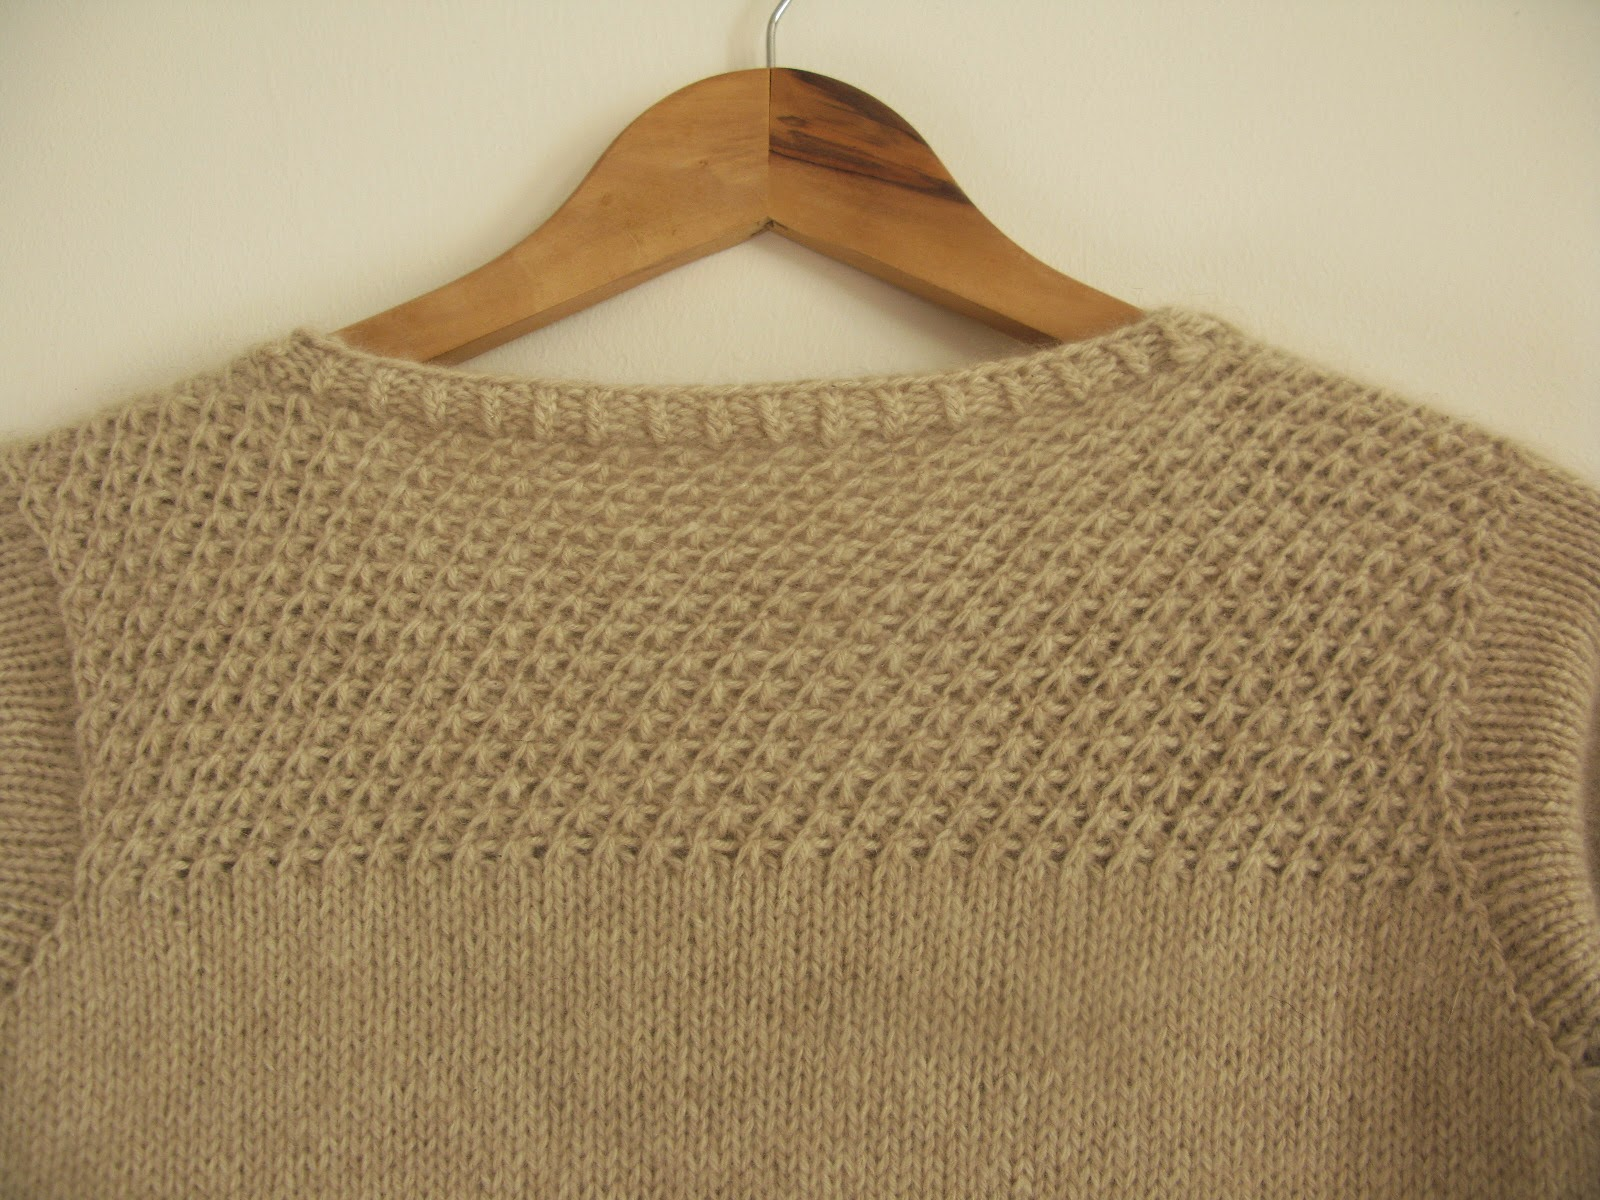 texture knit knitting pattern